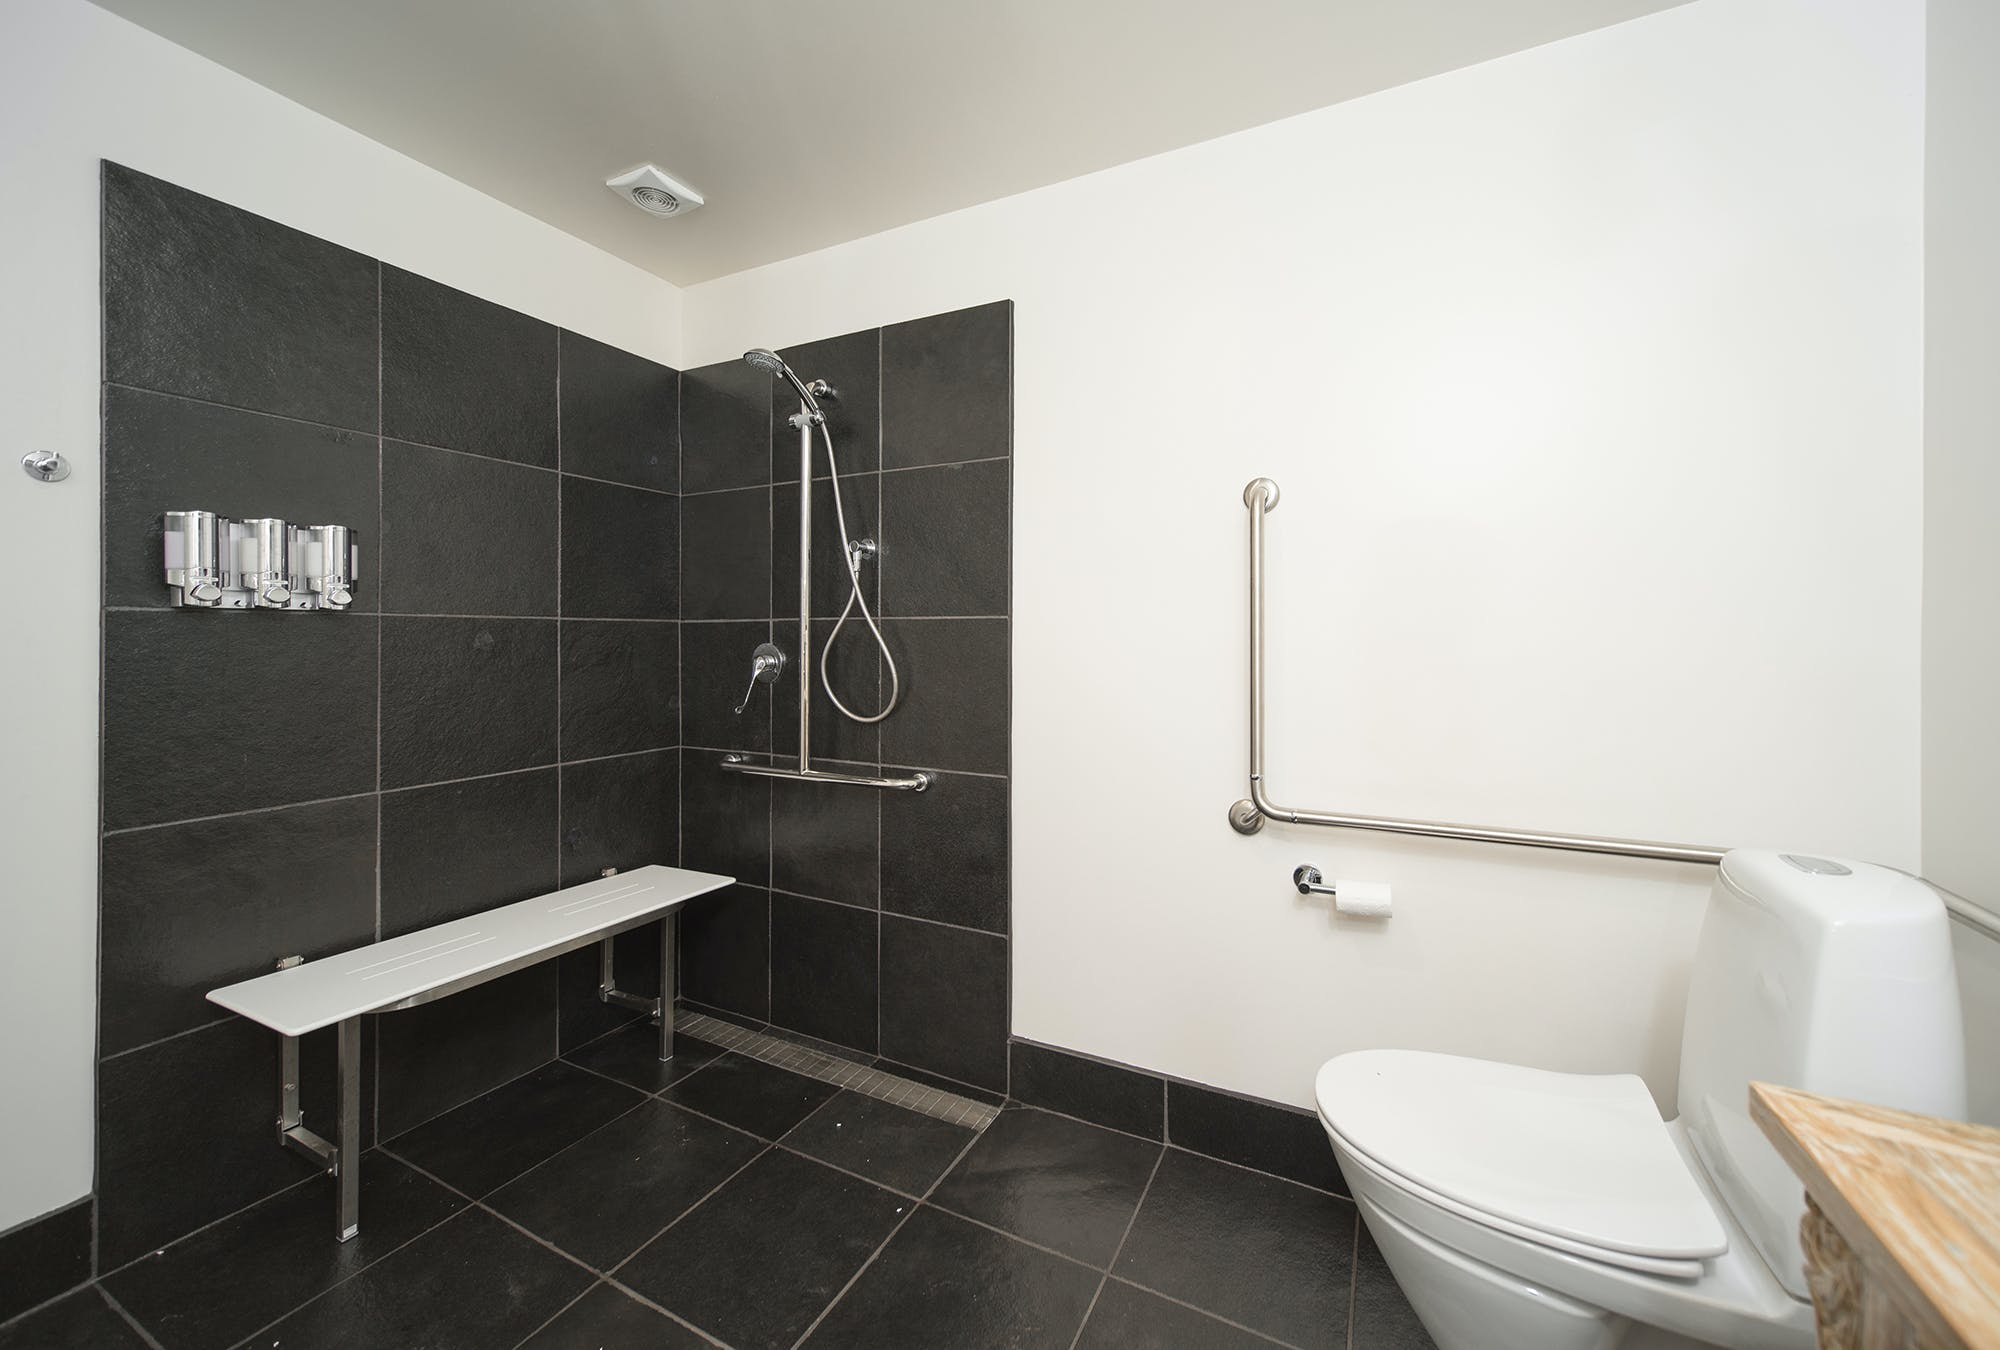 Apartment 2 - Disabled friendly bathroom